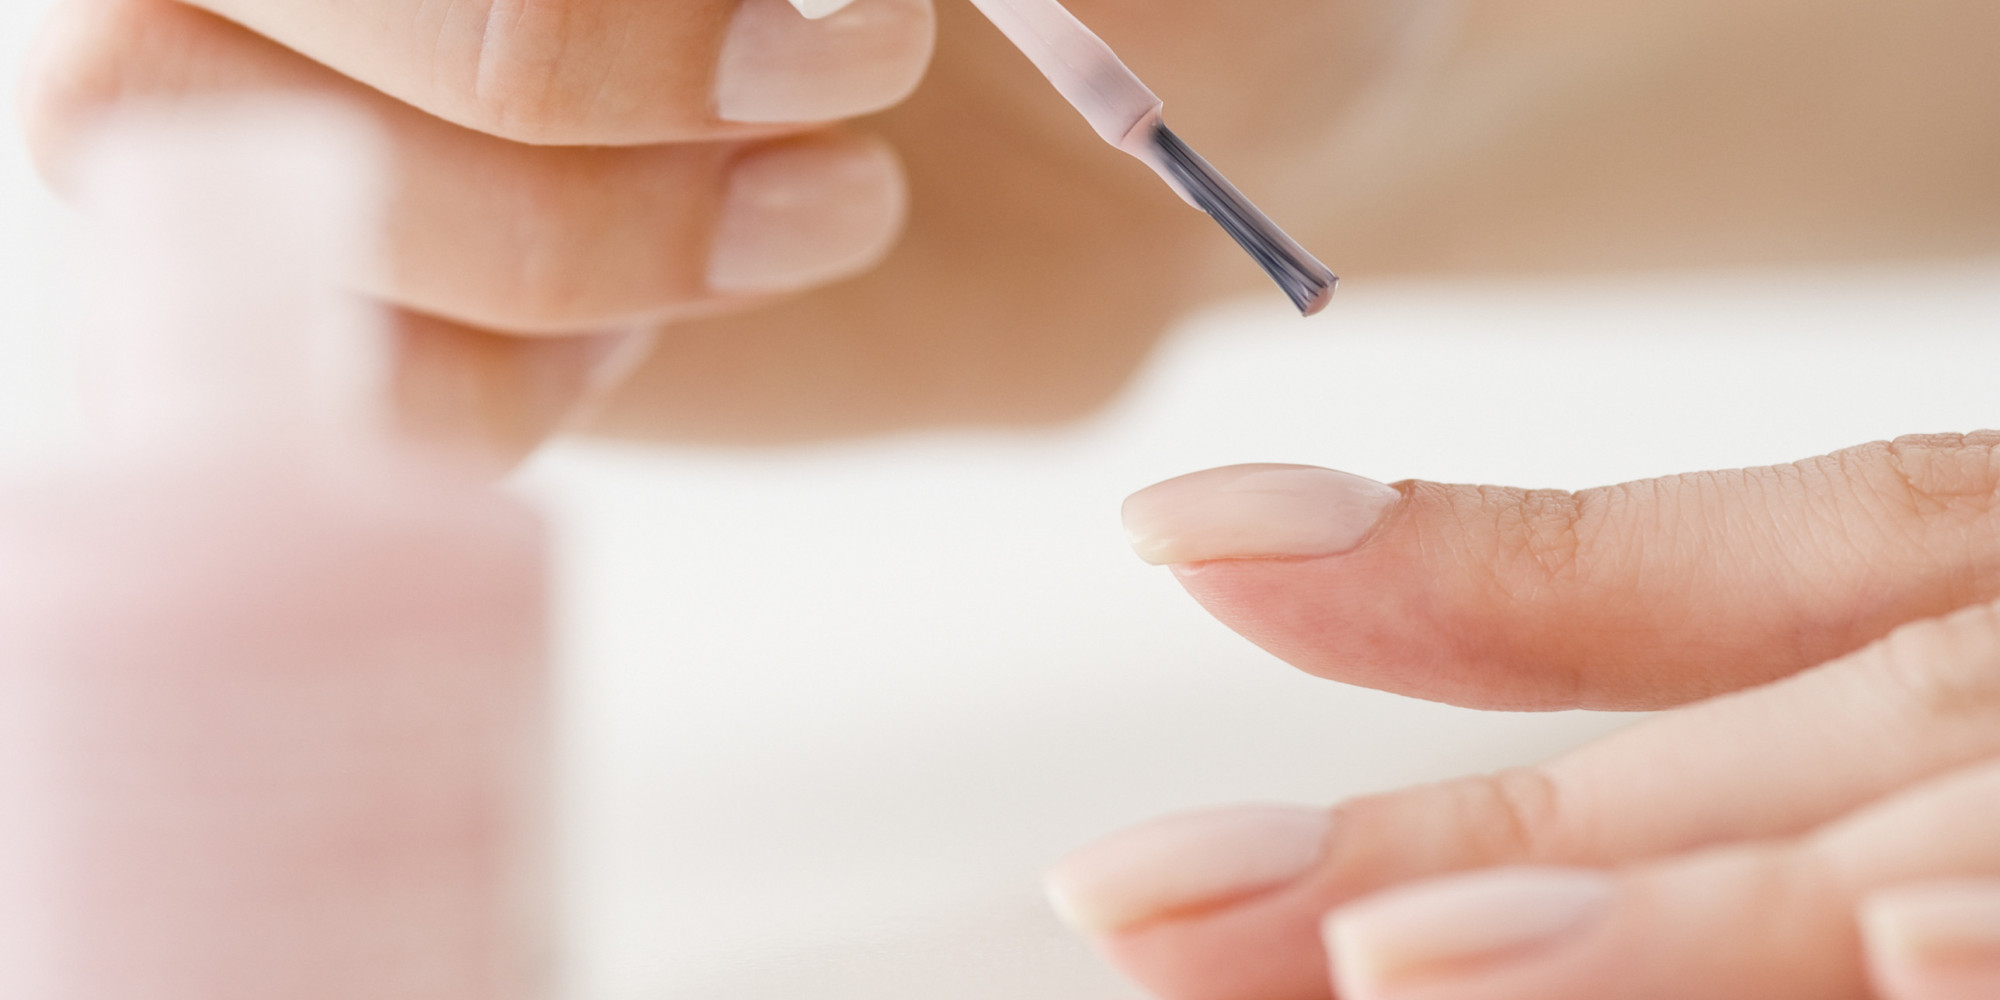 Skin and Nails -- Managing Chemo Side Effects With Style | HuffPost